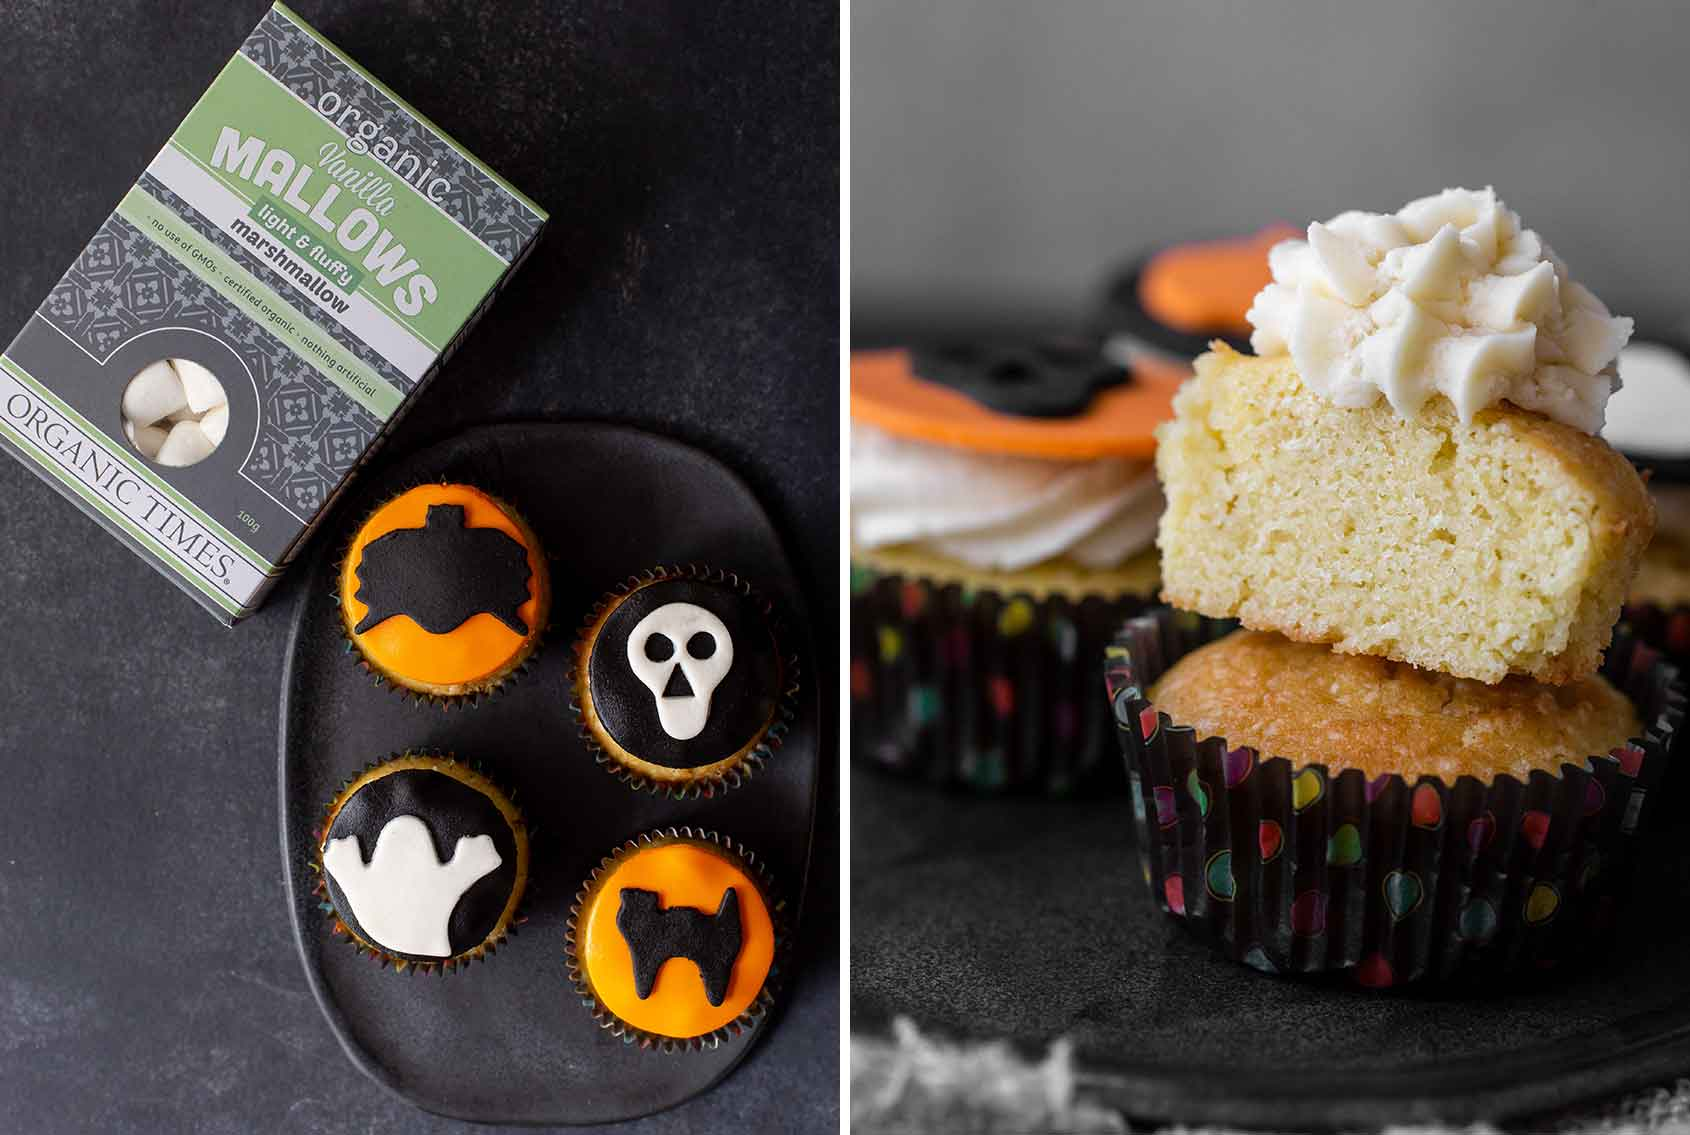 Organic Times Marshmallows next to Vanilla cupcakes with halloween images on top